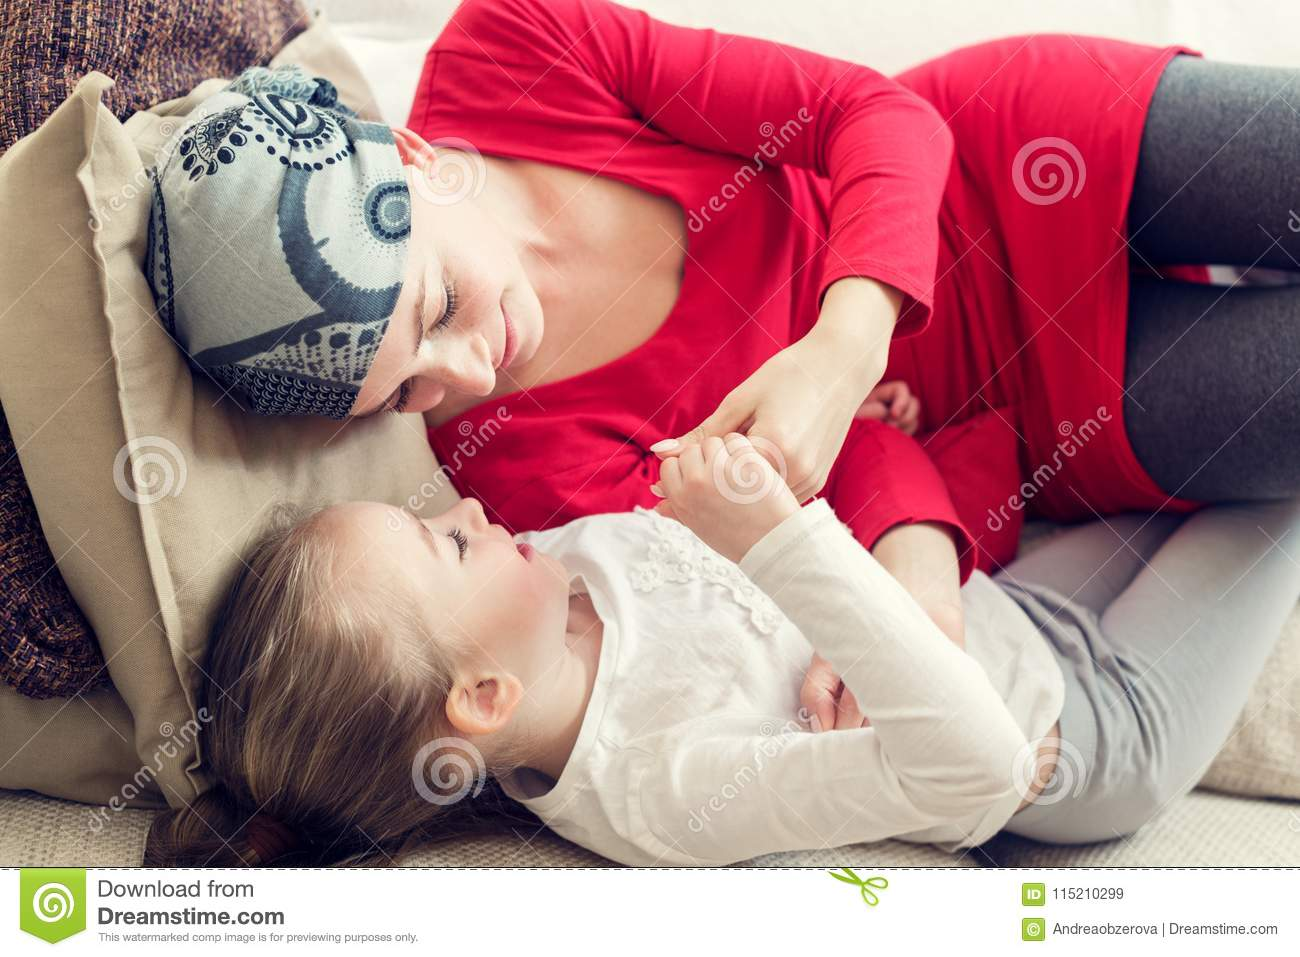 Young adult female cancer patient spending time with her daughter at home, relaxing on couch. Cancer and family support concept.